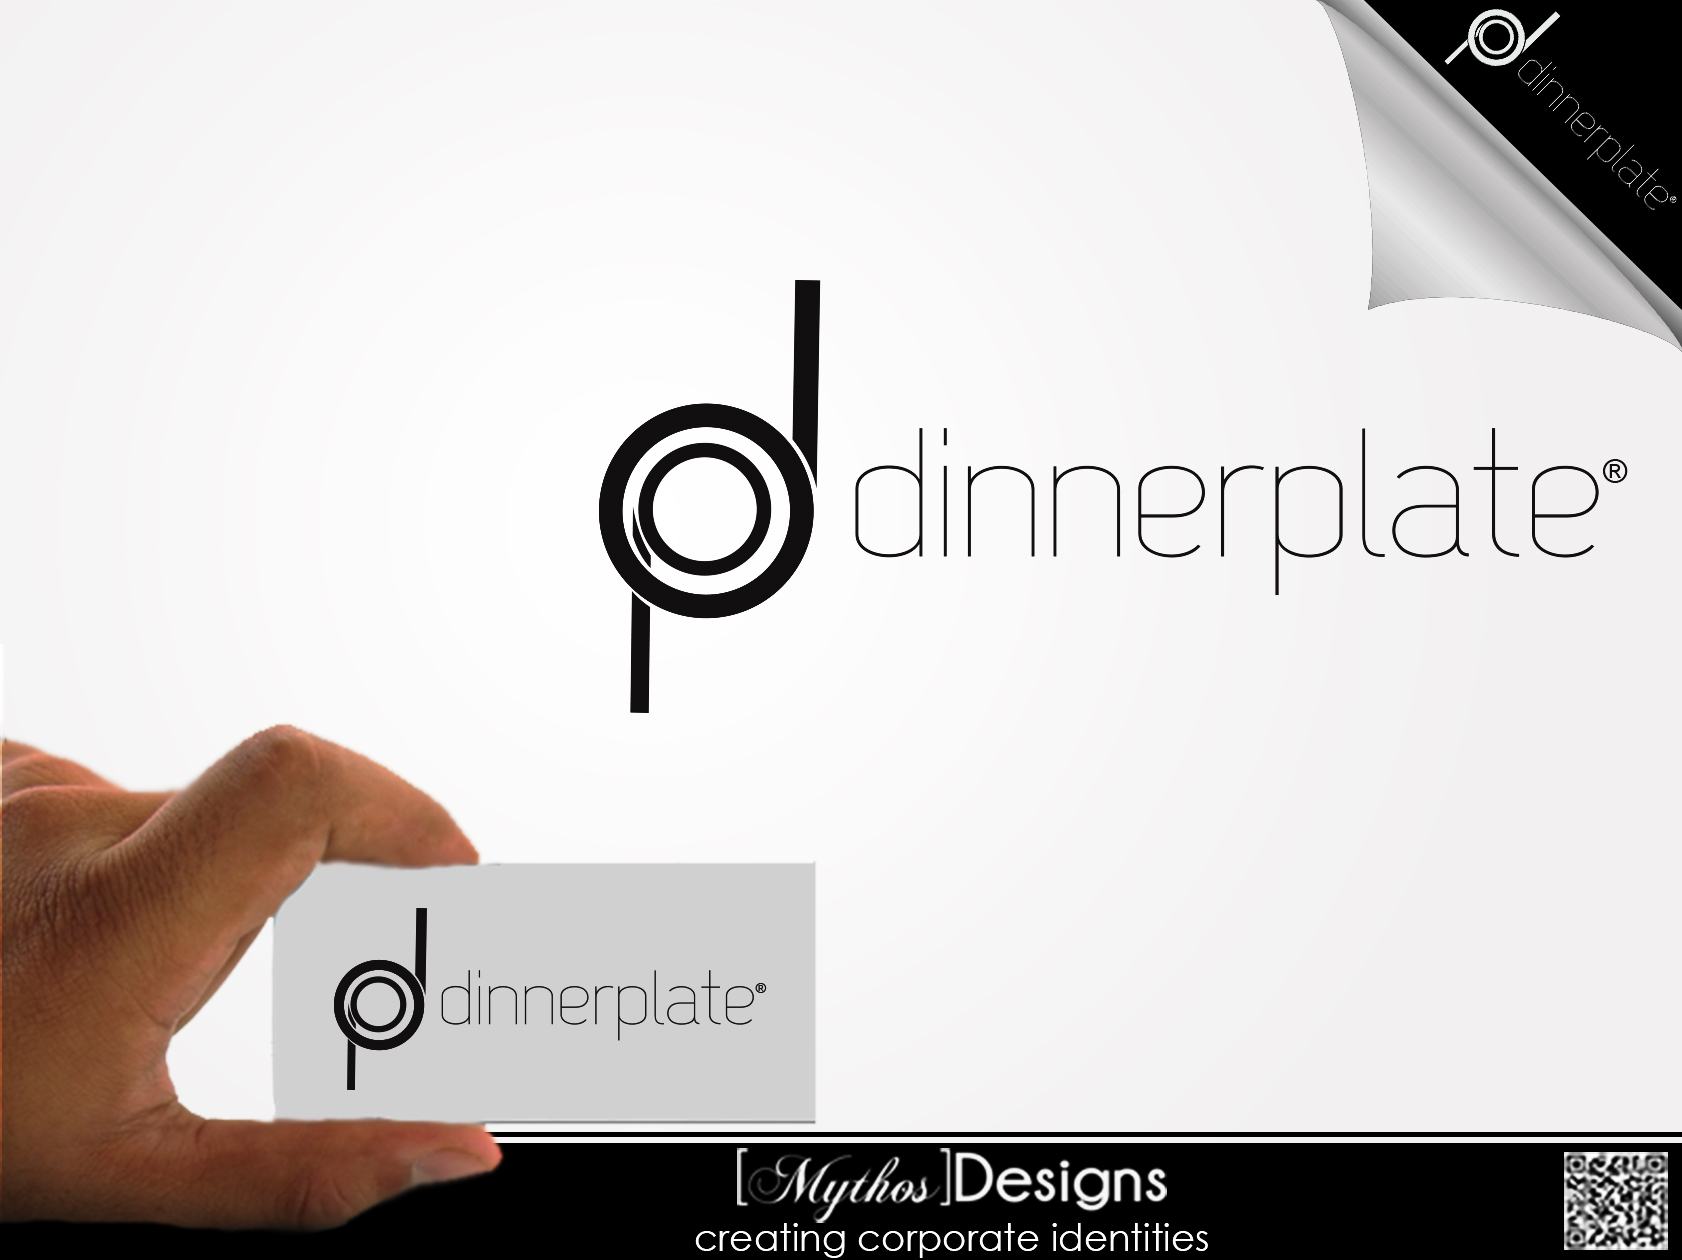 Logo Design by Mythos Designs - Entry No. 89 in the Logo Design Contest Imaginative Logo Design for Dinner Plate.